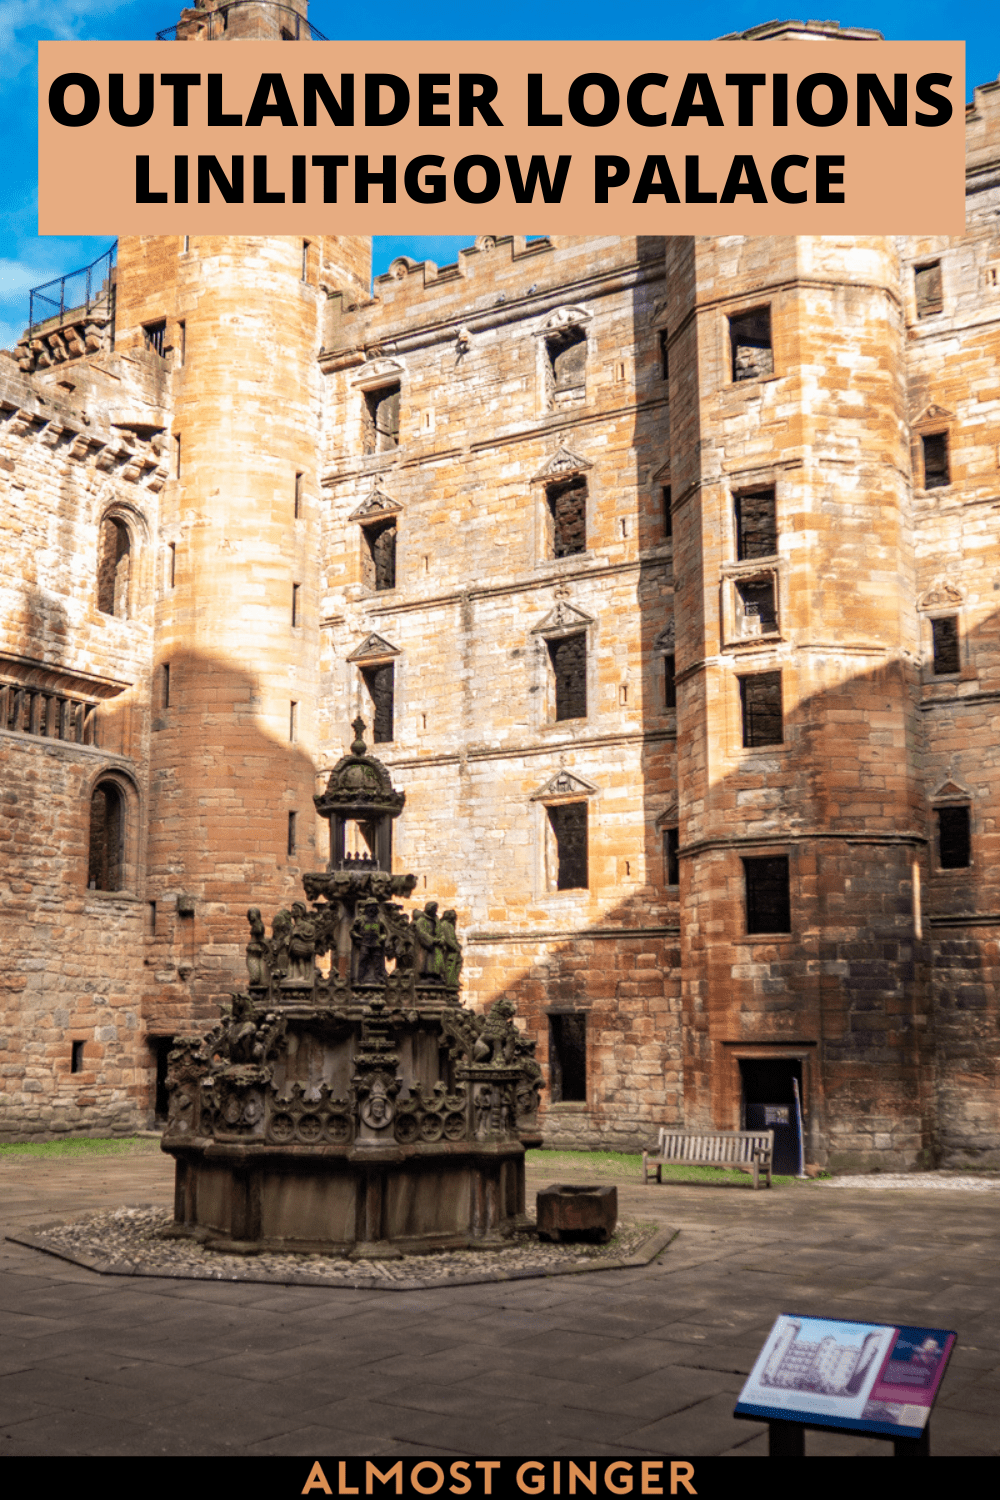 Linlithgow Palace Outlander Location: A Complete Wentworth Prison Guide | almostginger.com